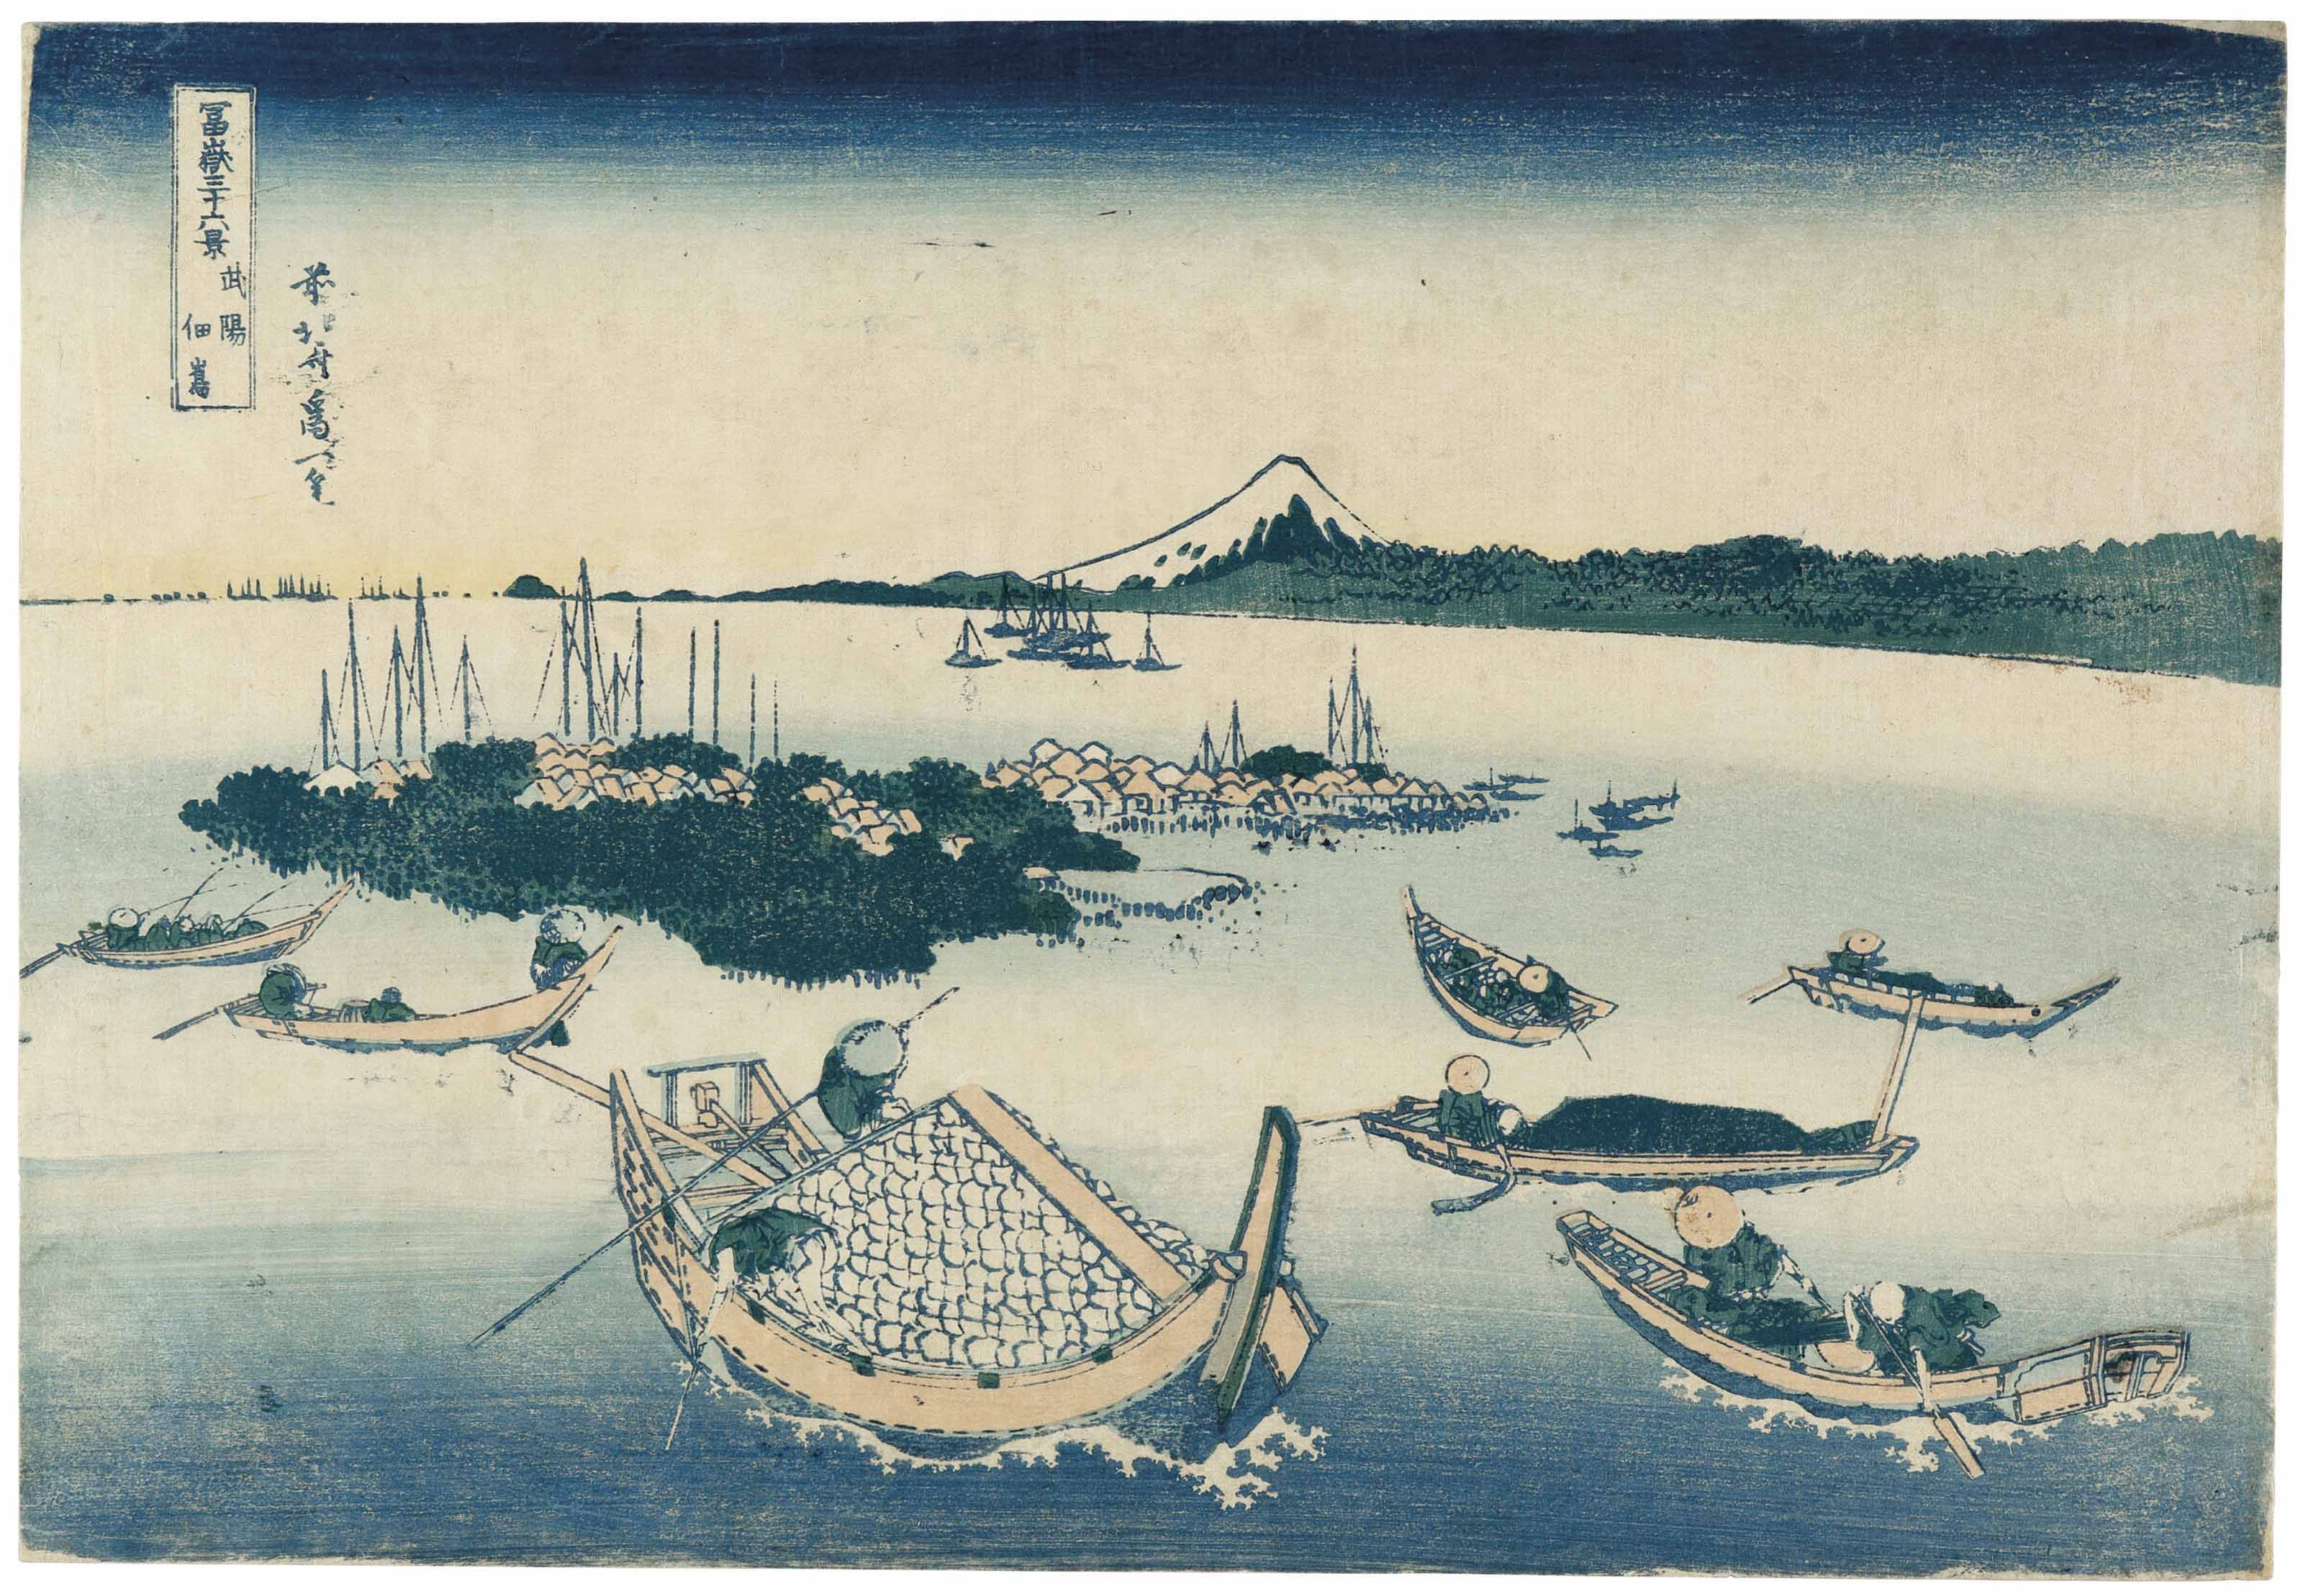 Katsushika Hokusai (1760-1849), Buyo Tsukudajima (Tsukuda Island in Musashi Province), from the series Fugaku Sanjurokkei (The Thirty-Six Views of Mount Fuji. 10⅛ x 14¾  in (25.7 x 37.5  cm). Estimate $13,000-15,000. Sold for $32,500 on 18 April 2018 at Christie's in New York